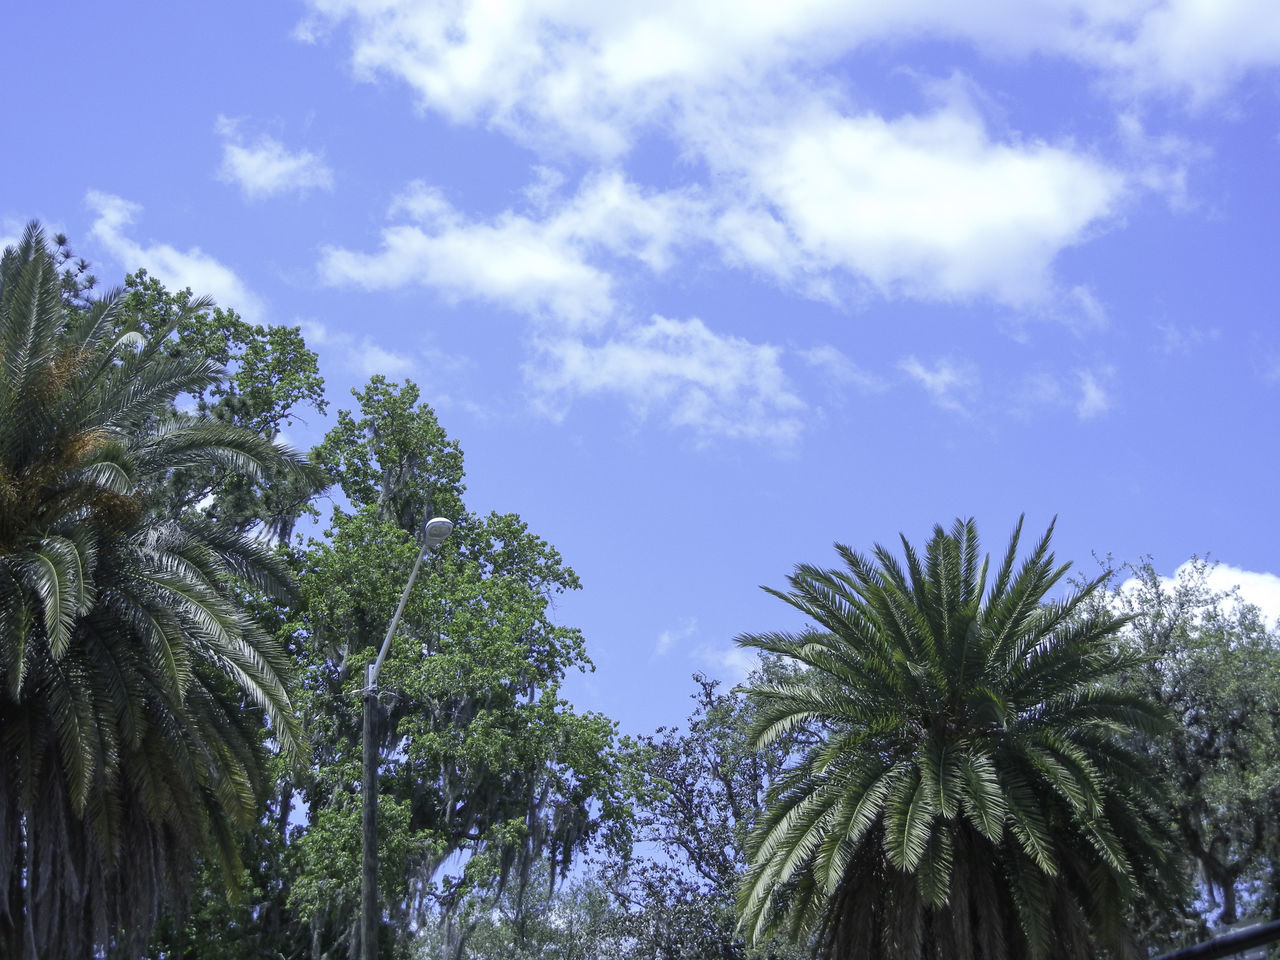 Bright blue skyscape above tropical palms and live oak trees. Beauty In Nature Blue Sky Bright Clouds Clouds And Sky Cloudscape Dramatic Sky Low Angle View Nature No People Outdoors Palm Trees Scenics Sky Tree Trees Tropical Tropical Climate